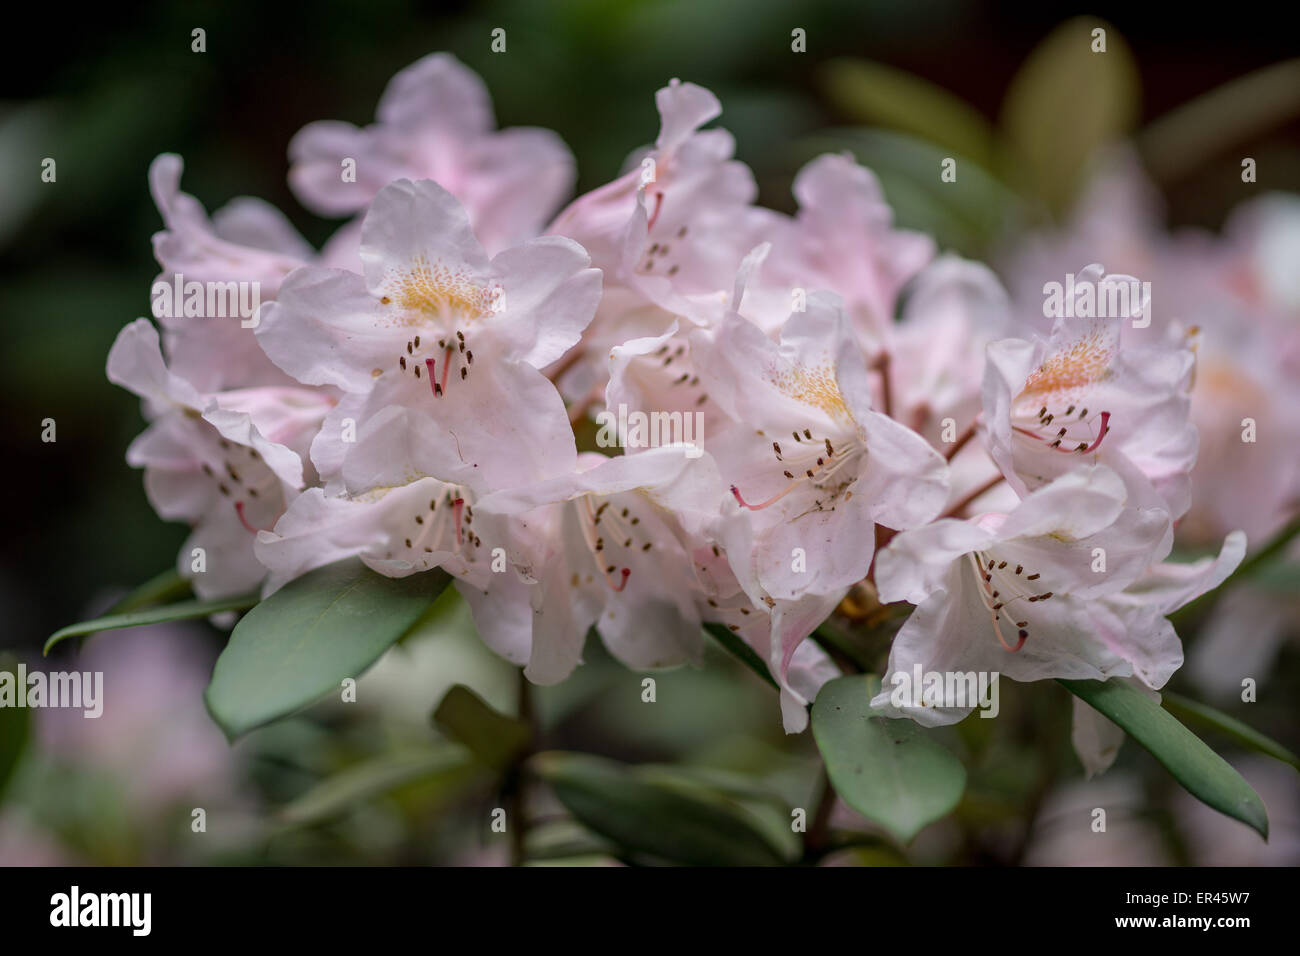 Rhododendron rose fleurs scirpe close up Photo Stock